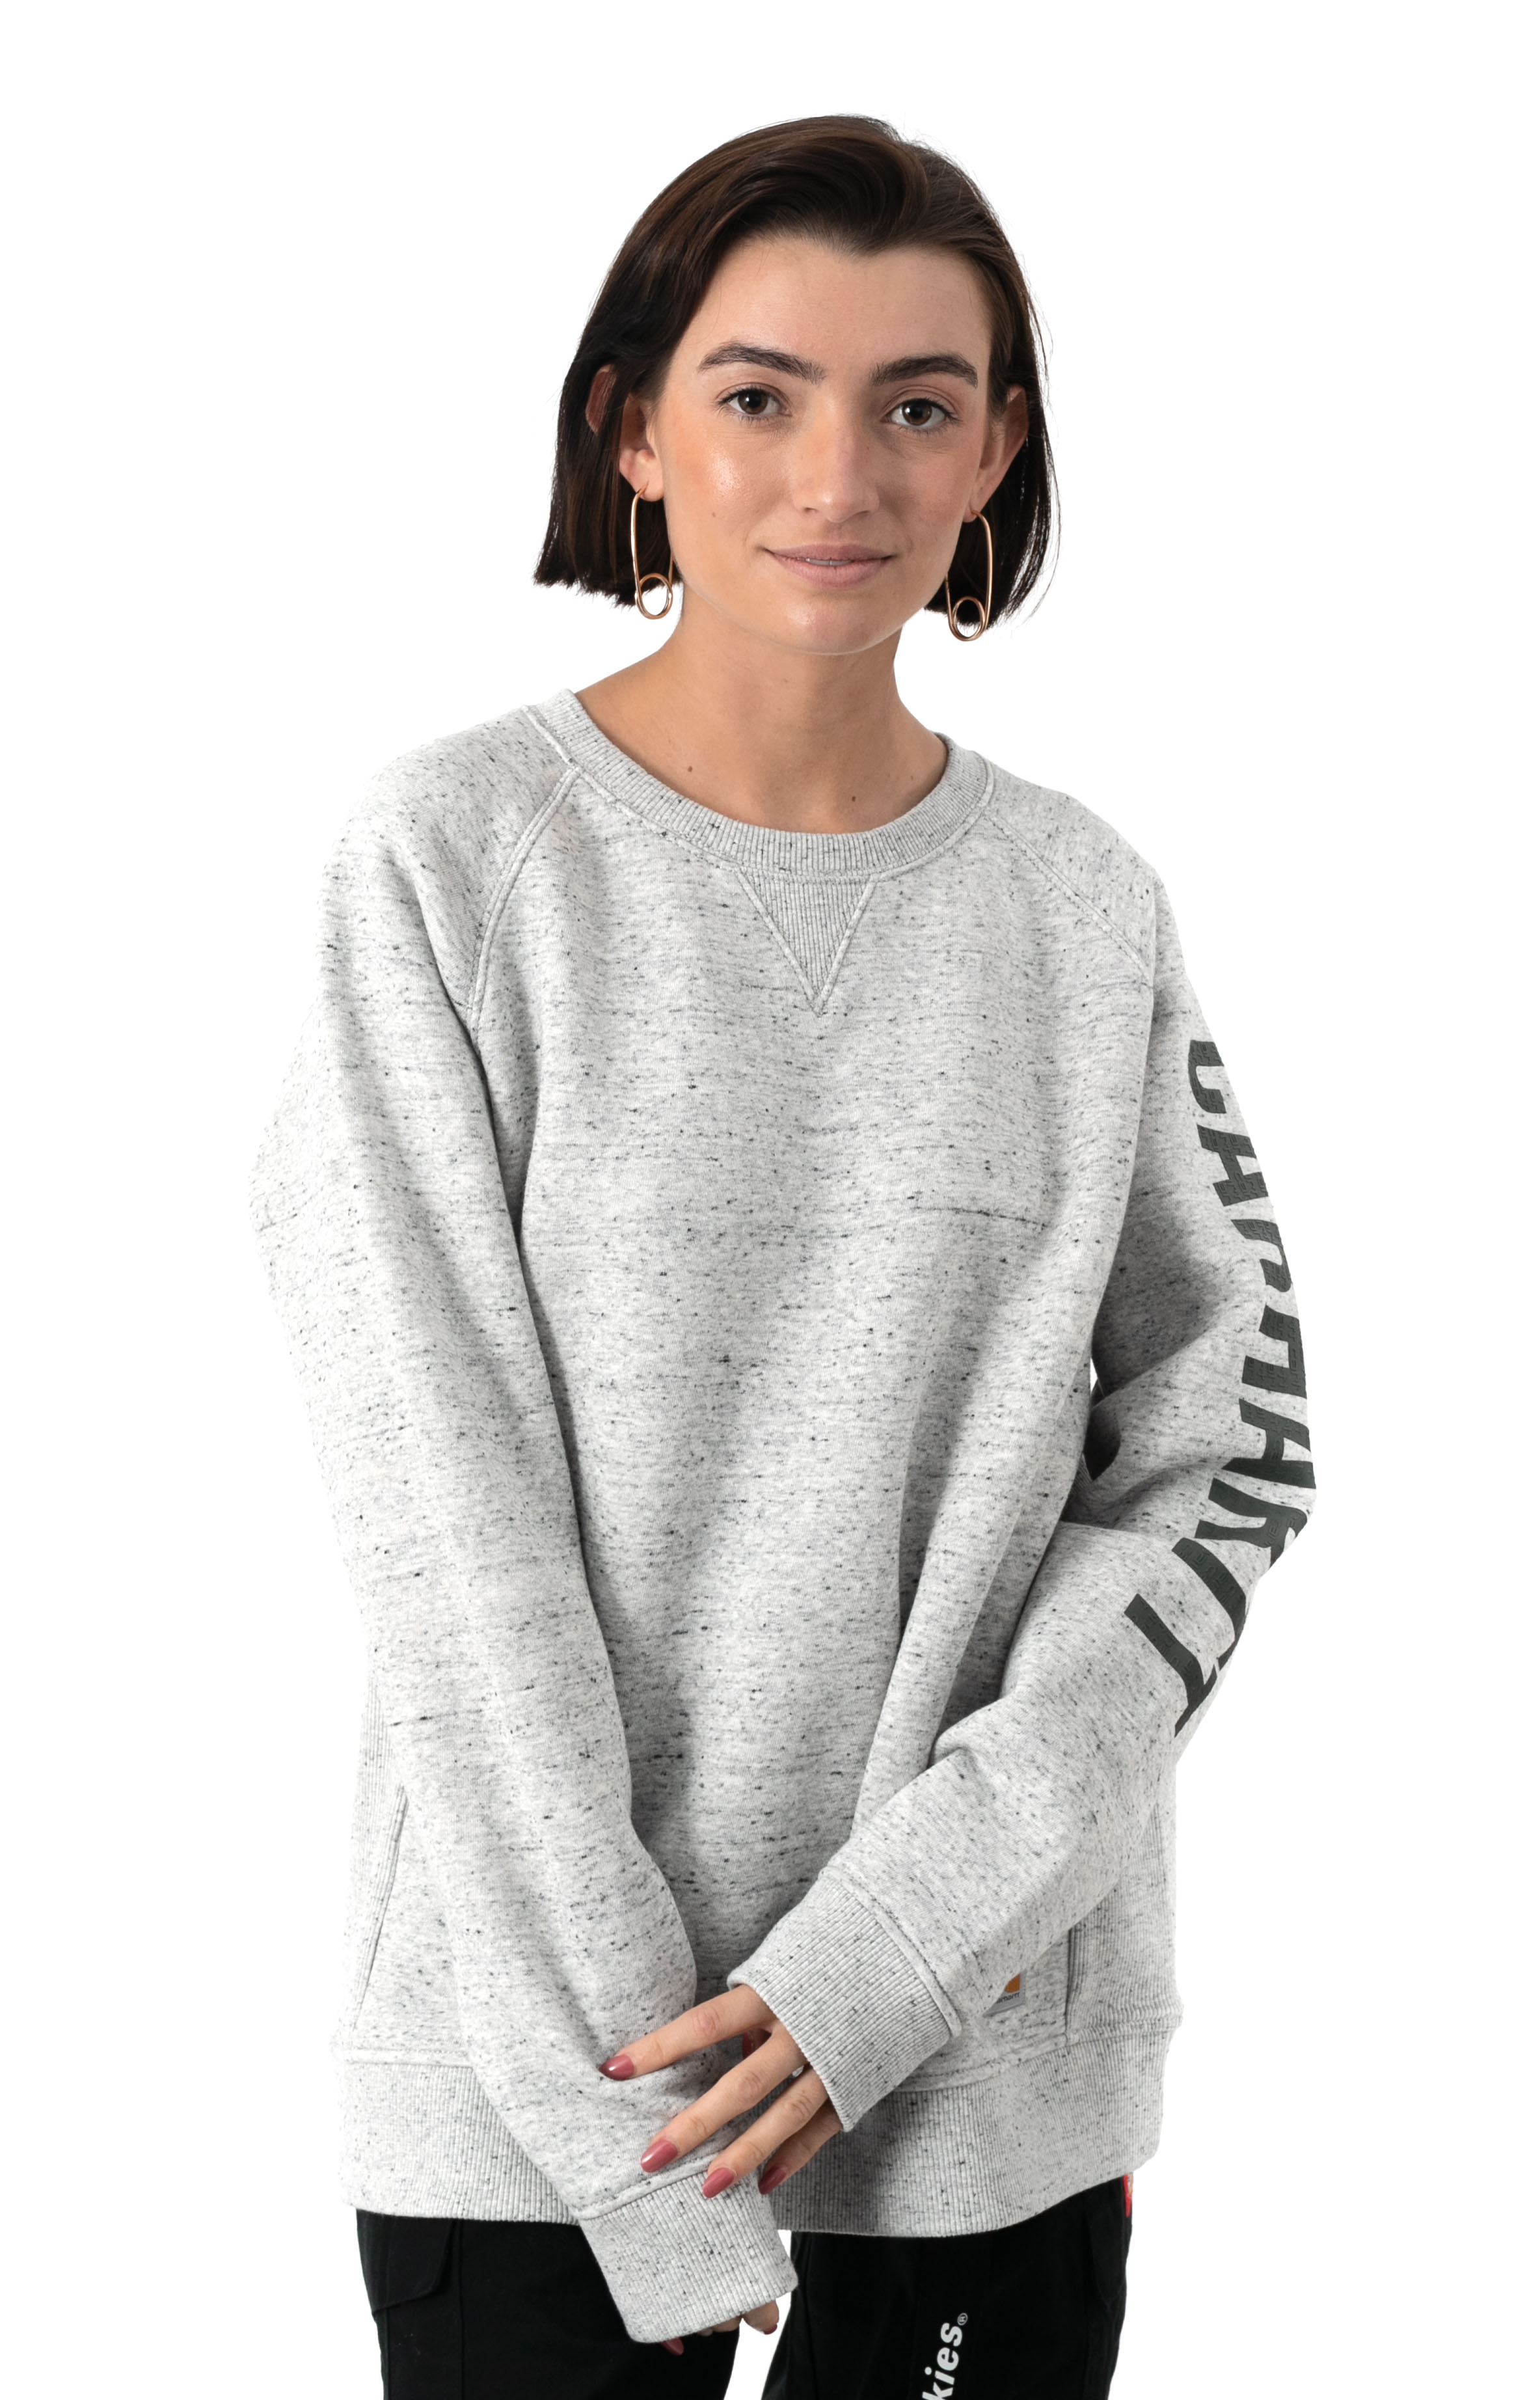 (104410) Relaxed Fit MW Graphic Sweatshirt - Asphalt Heather Nep